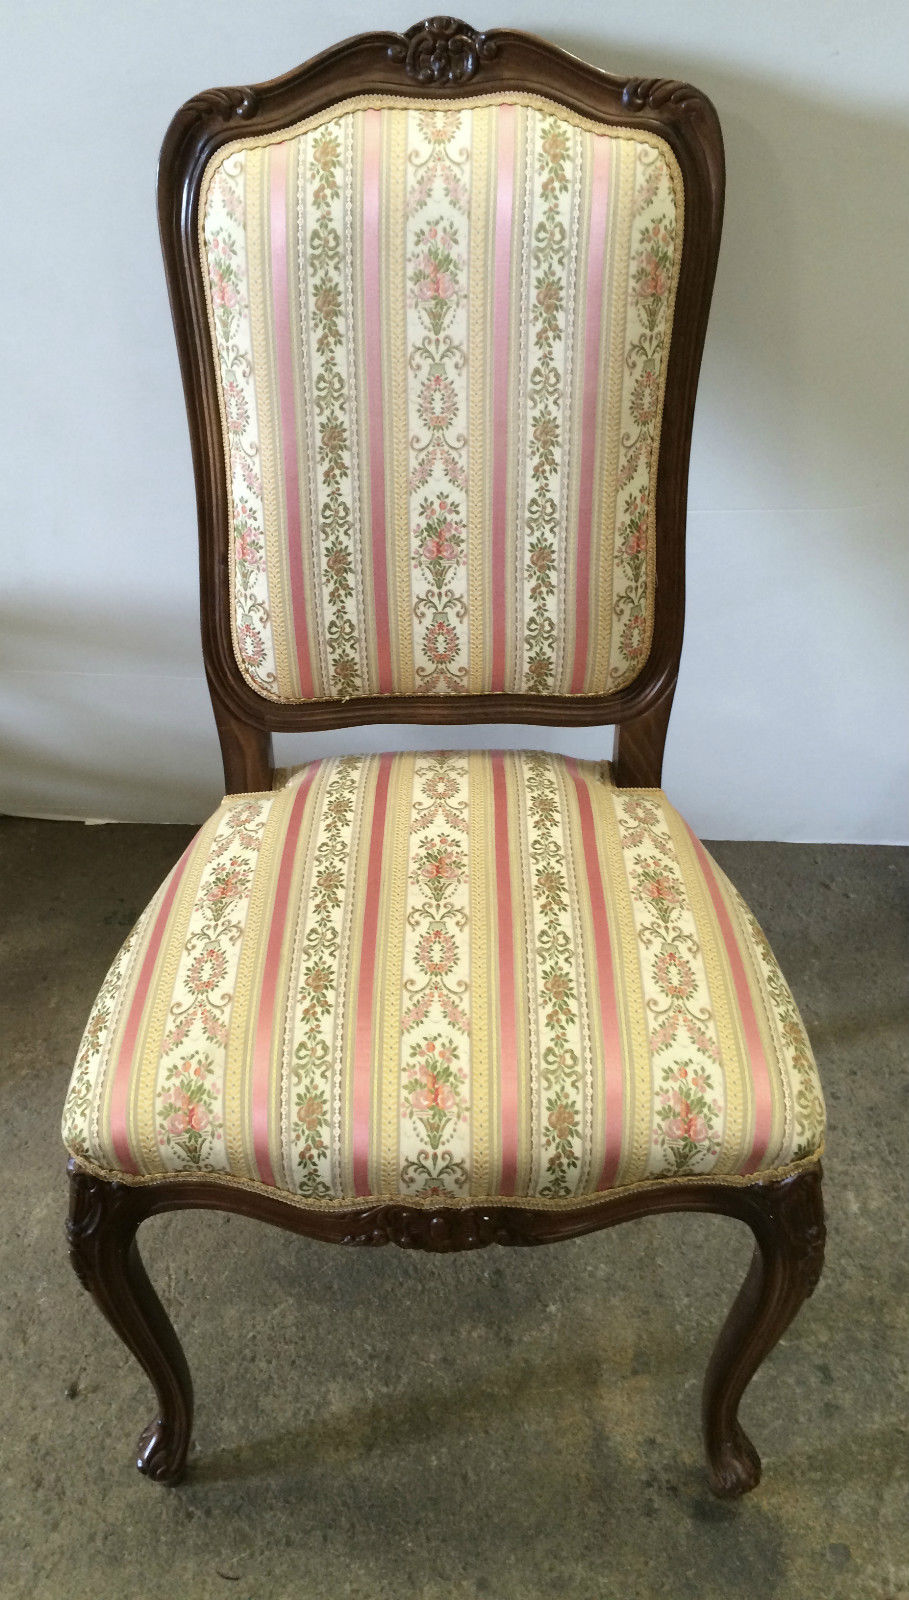 Set Of 6 Antique Reproduction Carver Dining Chairs On Cabriole Legs | Melbourne | Halsey Road Recyclers